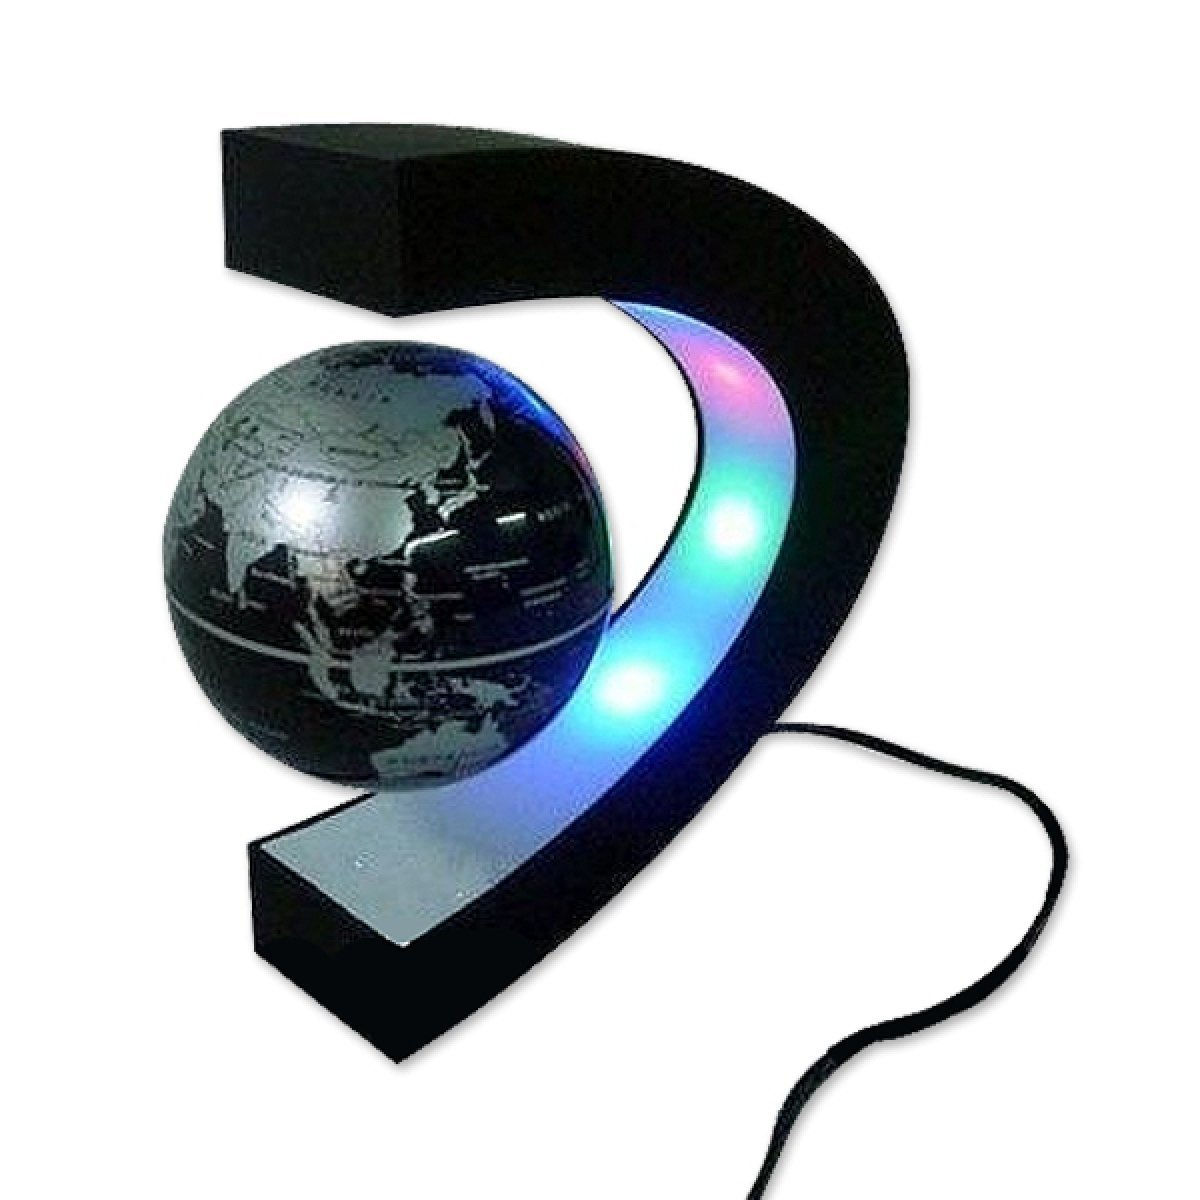 globe terrestre led objet maison insolite mr etrange. Black Bedroom Furniture Sets. Home Design Ideas